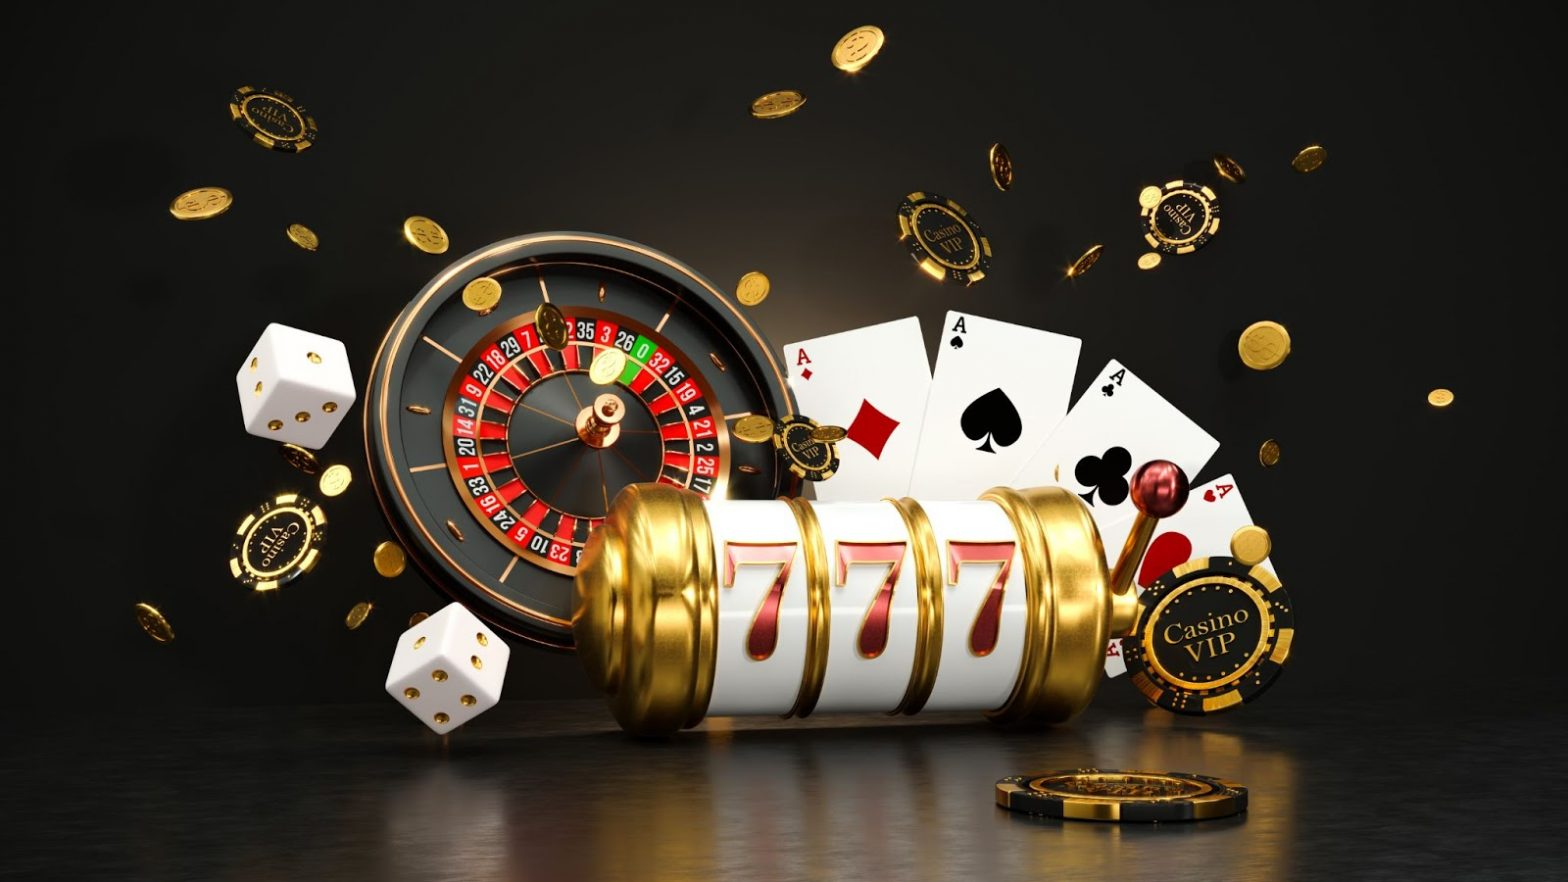 How Does The House Edge Factor Play Into Gambling?